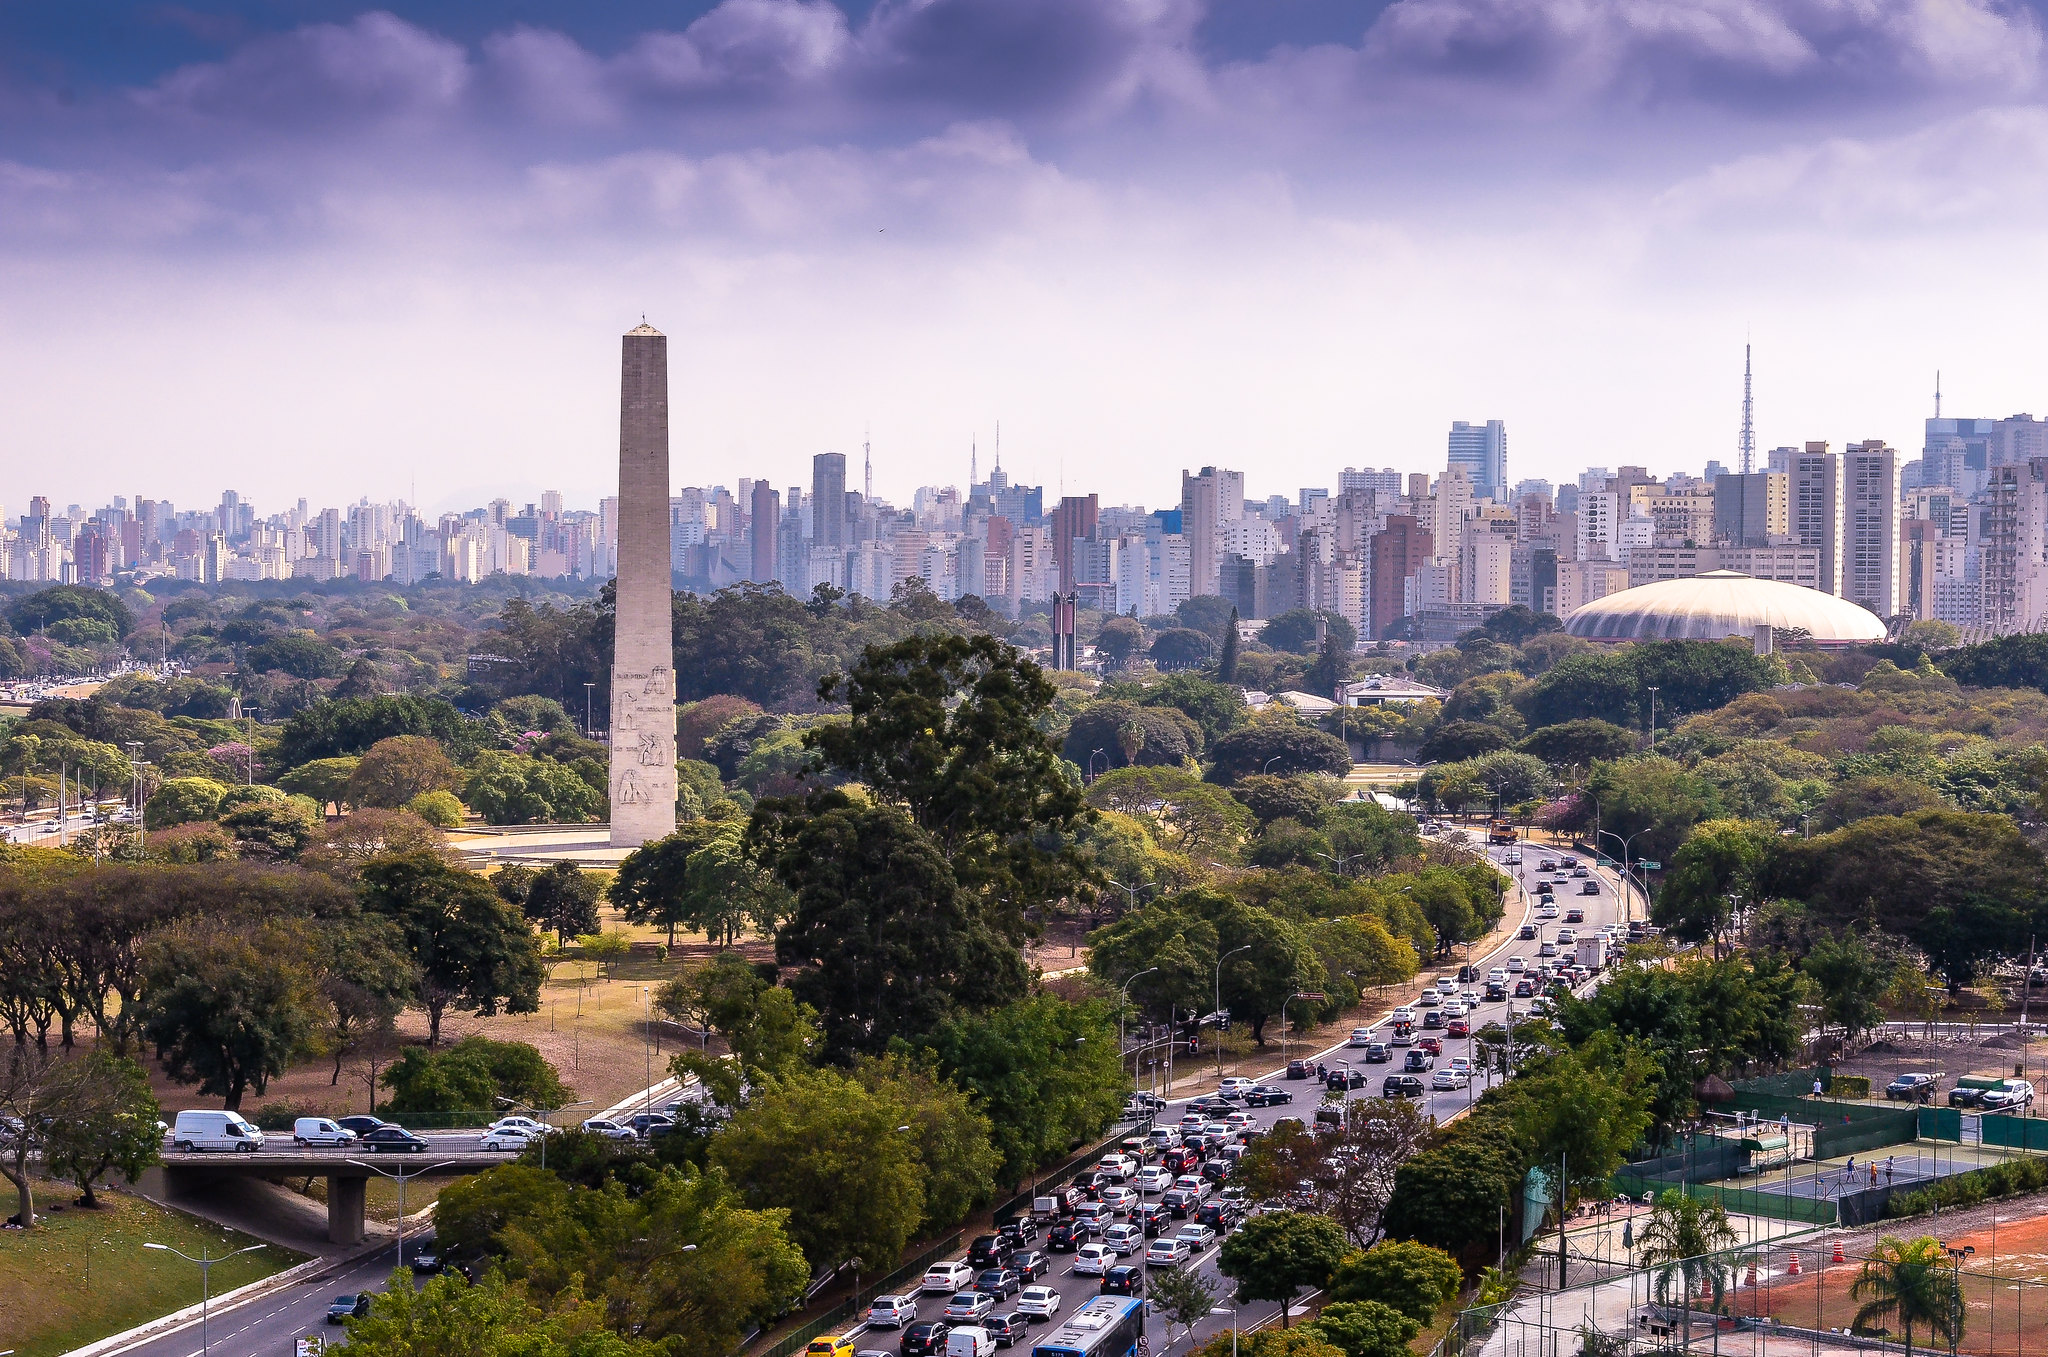 <p>The São Paulo skyline behind Ibirapuera Park. The city\'s urban trees are part of the greater Atlantic Forest ecosystem. Photo by Flávio Jota de Paula/Flickr.</p>